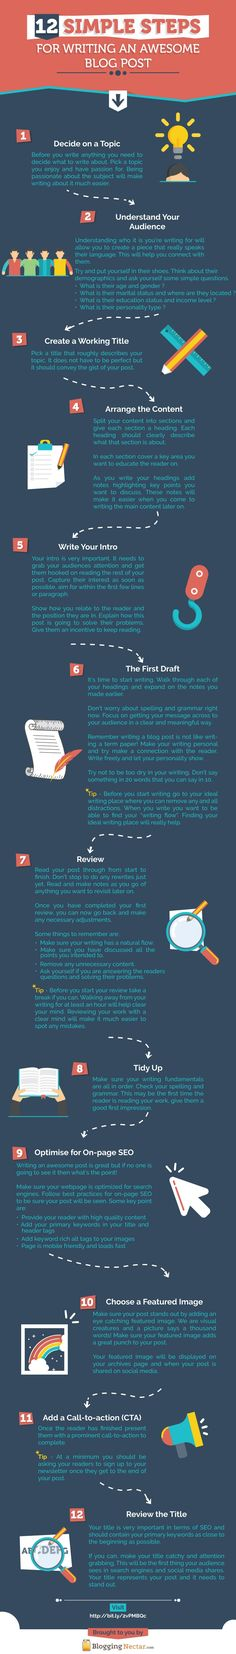 12 Simple Steps for Writing an Awesome Blog Post #[Infographic]